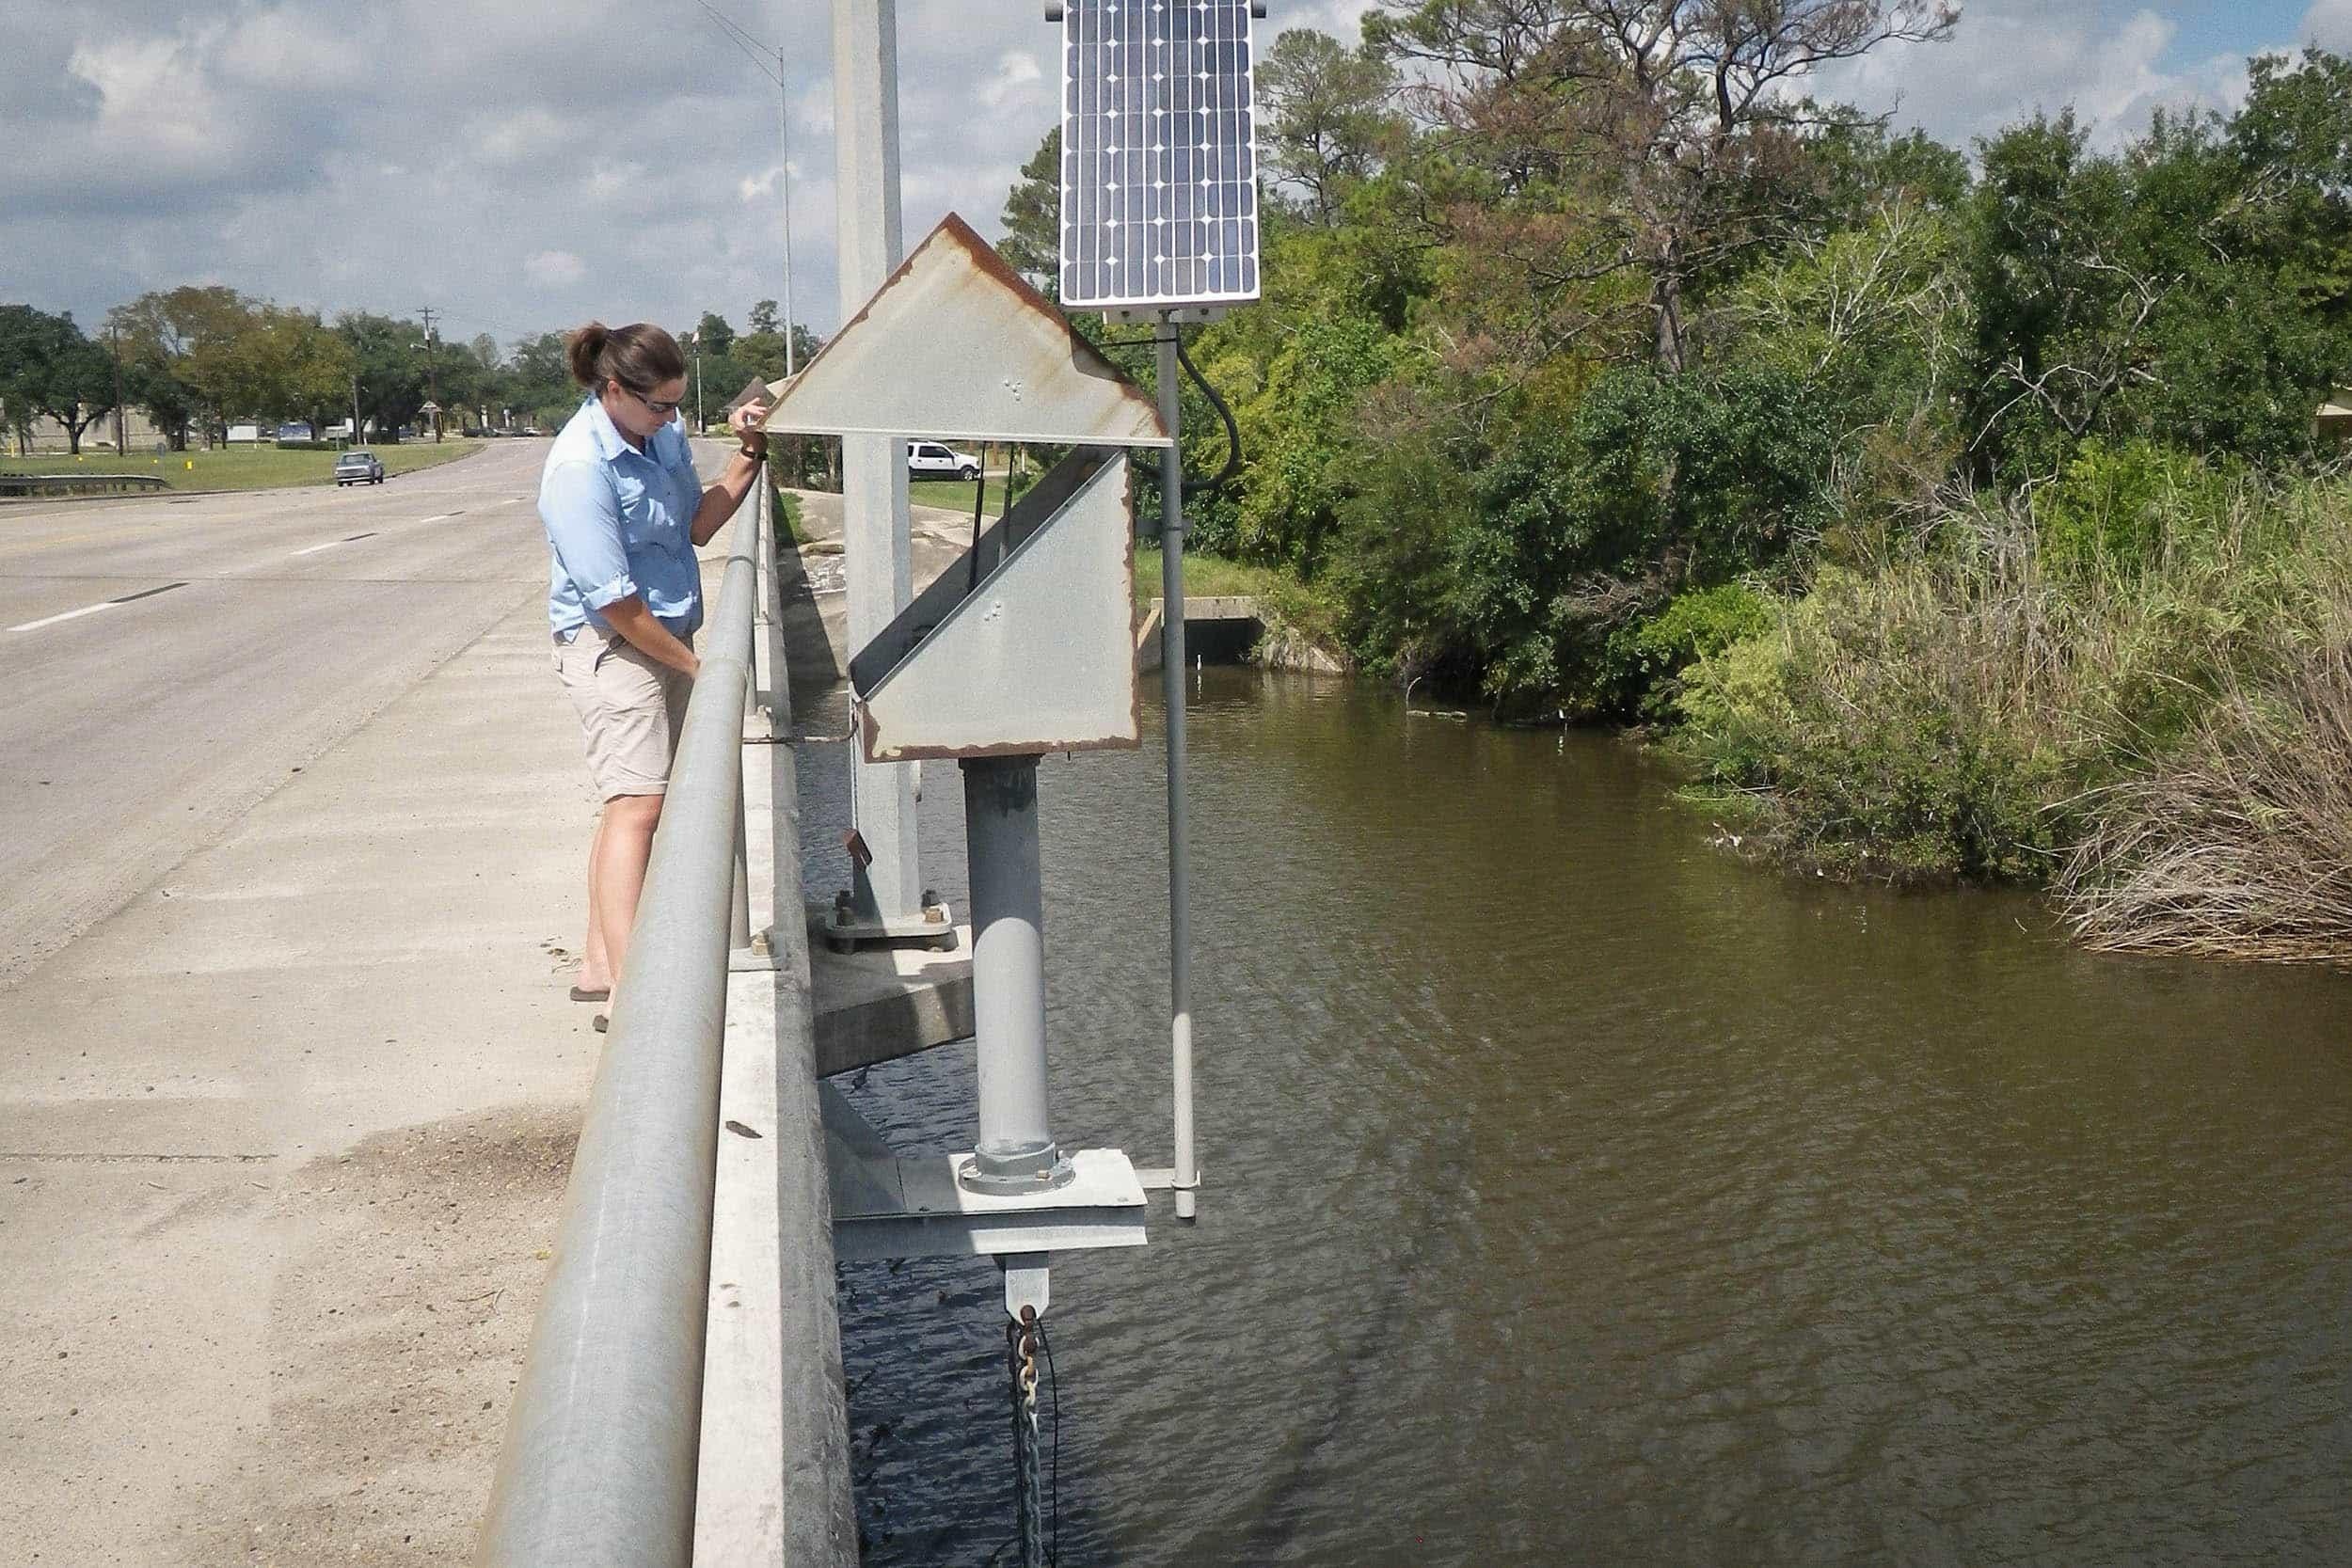 Misty Shepard, EIH research associate, collects water level (gauge height) data for Dickinson Bayou from a previously installed continuous monitoring TCEQ station.